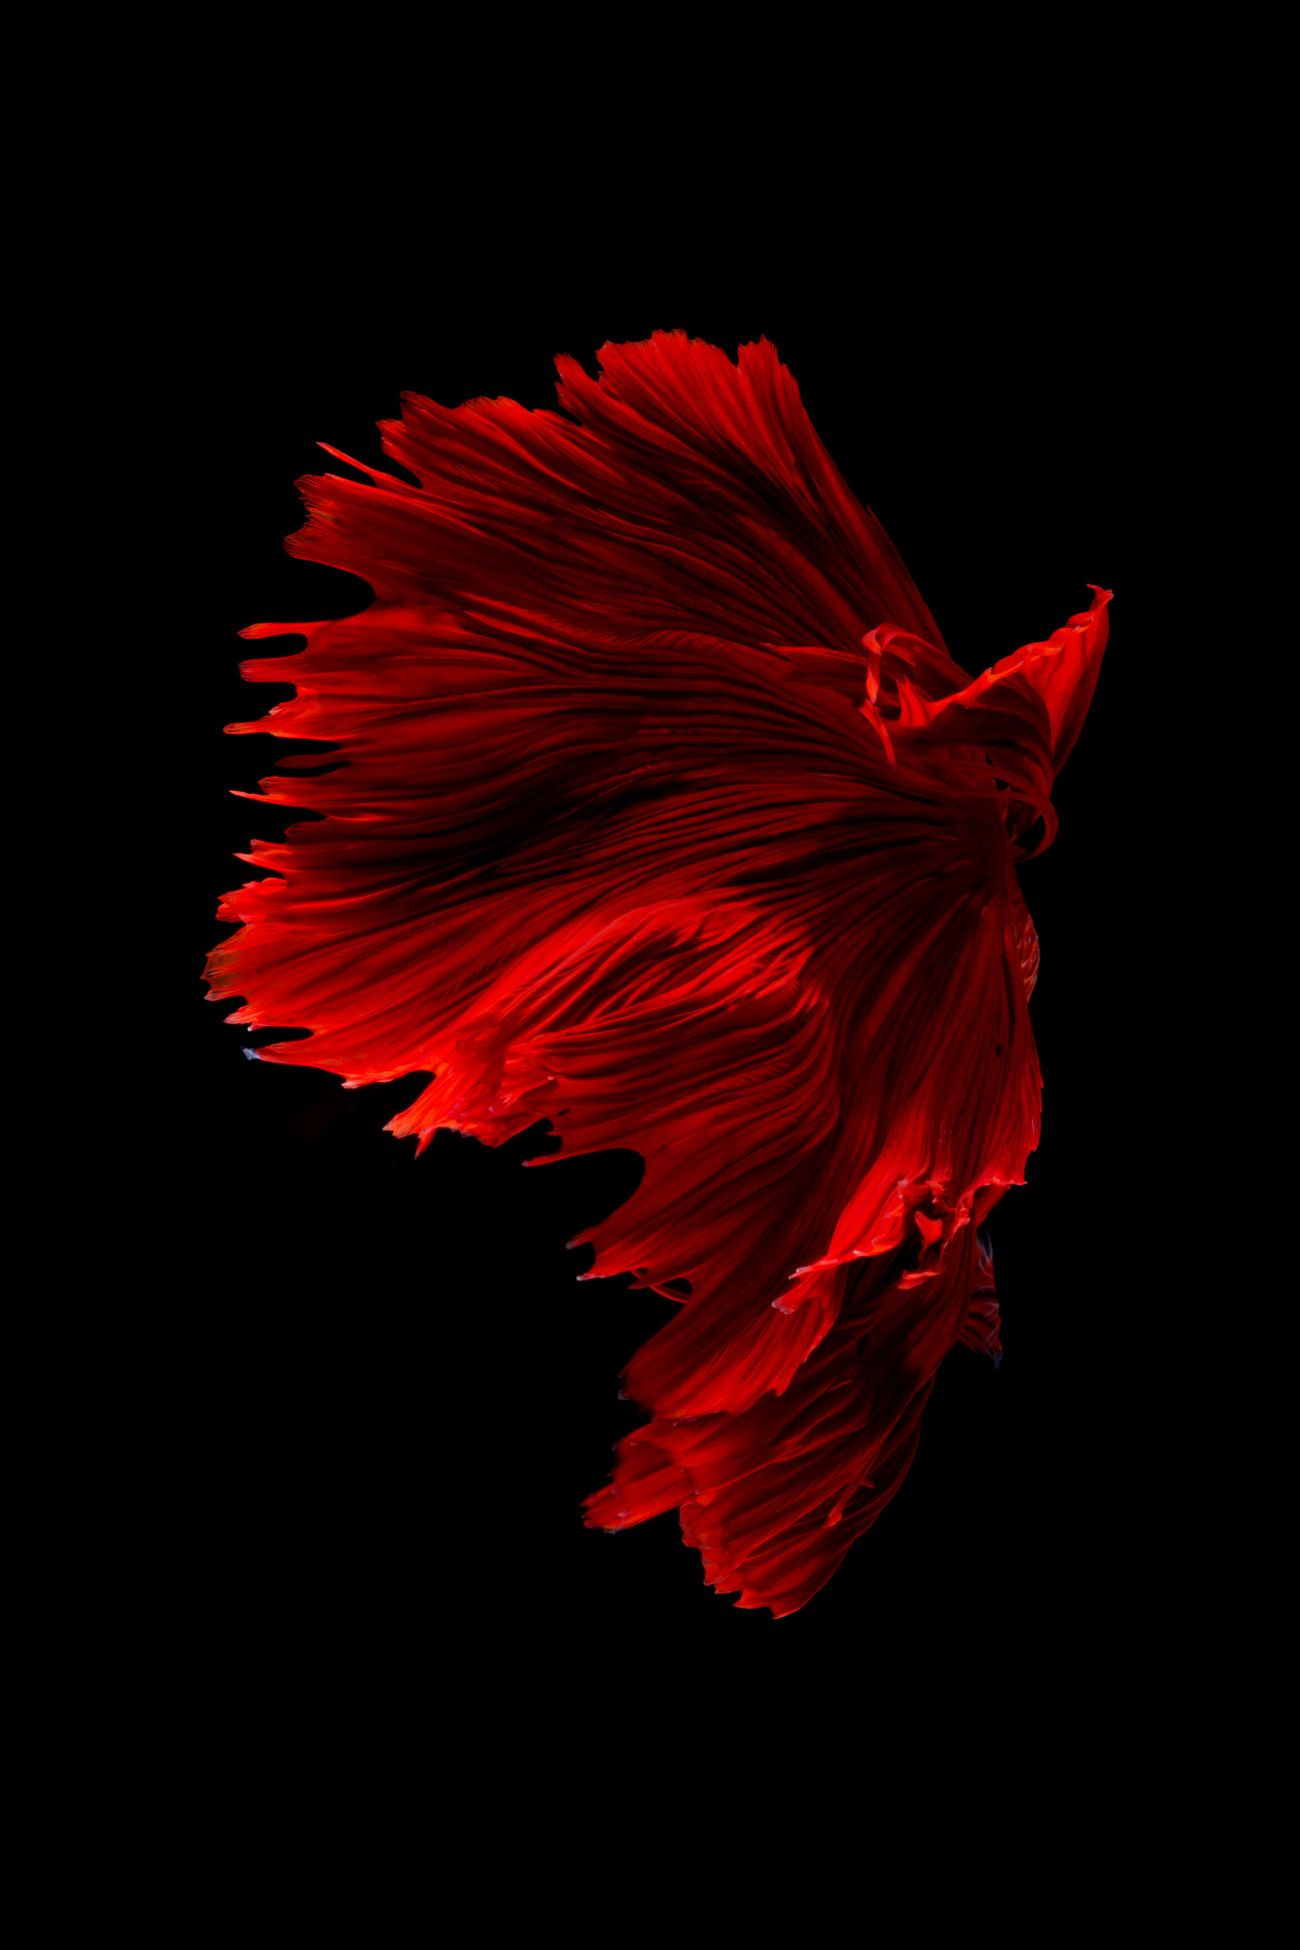 Red half-moon siamese fighting fish over black background Africa ...